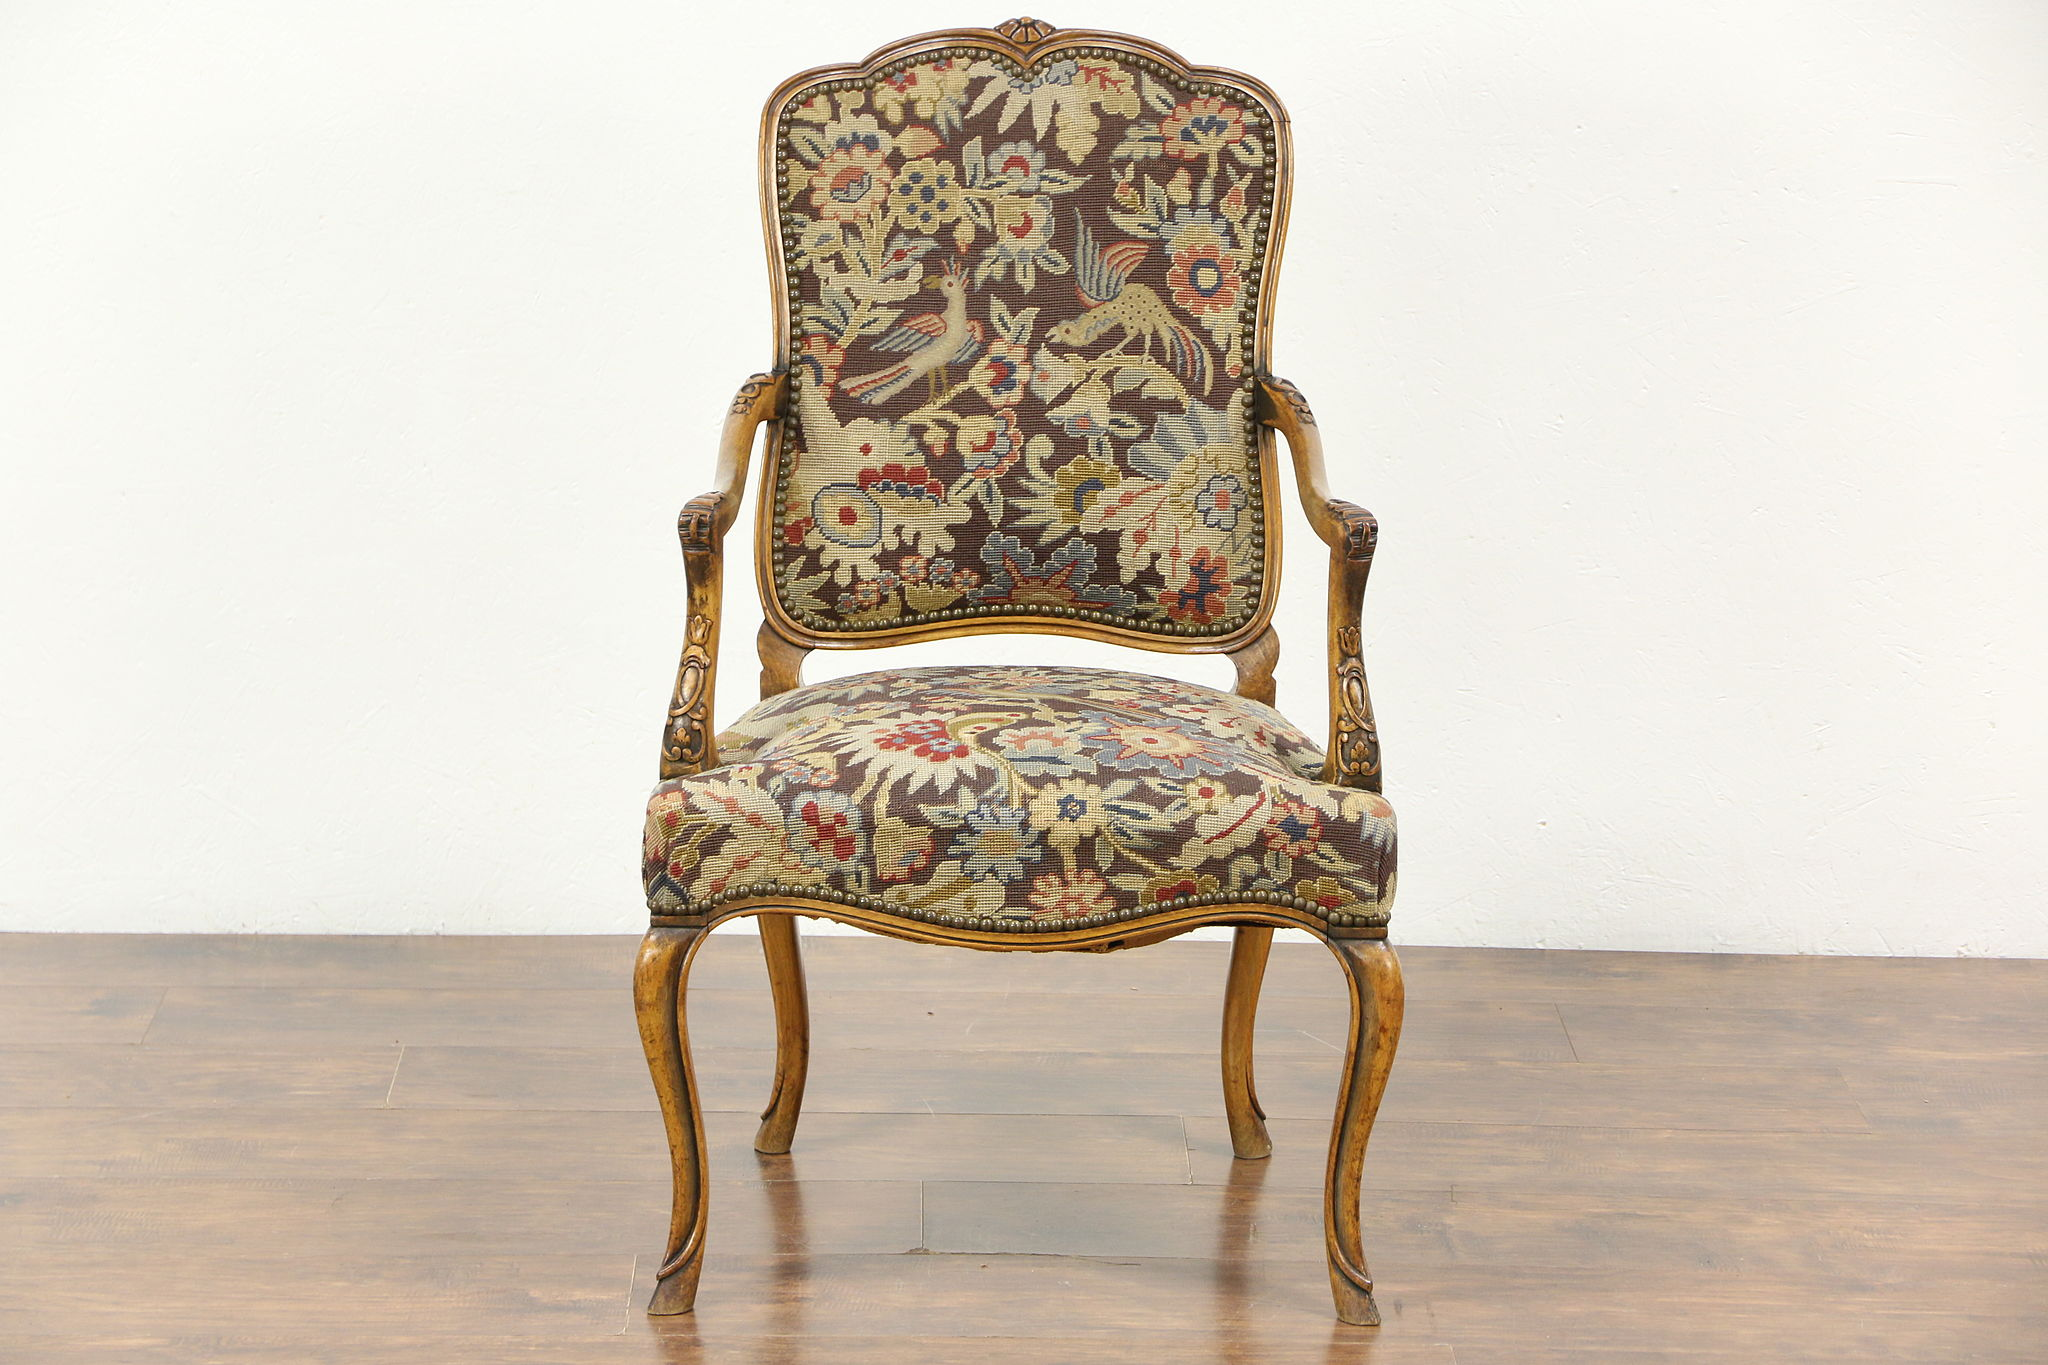 Captivating Carved Antique Scandinavian Chair, Needlepoint U0026 Petit Point Upholstery